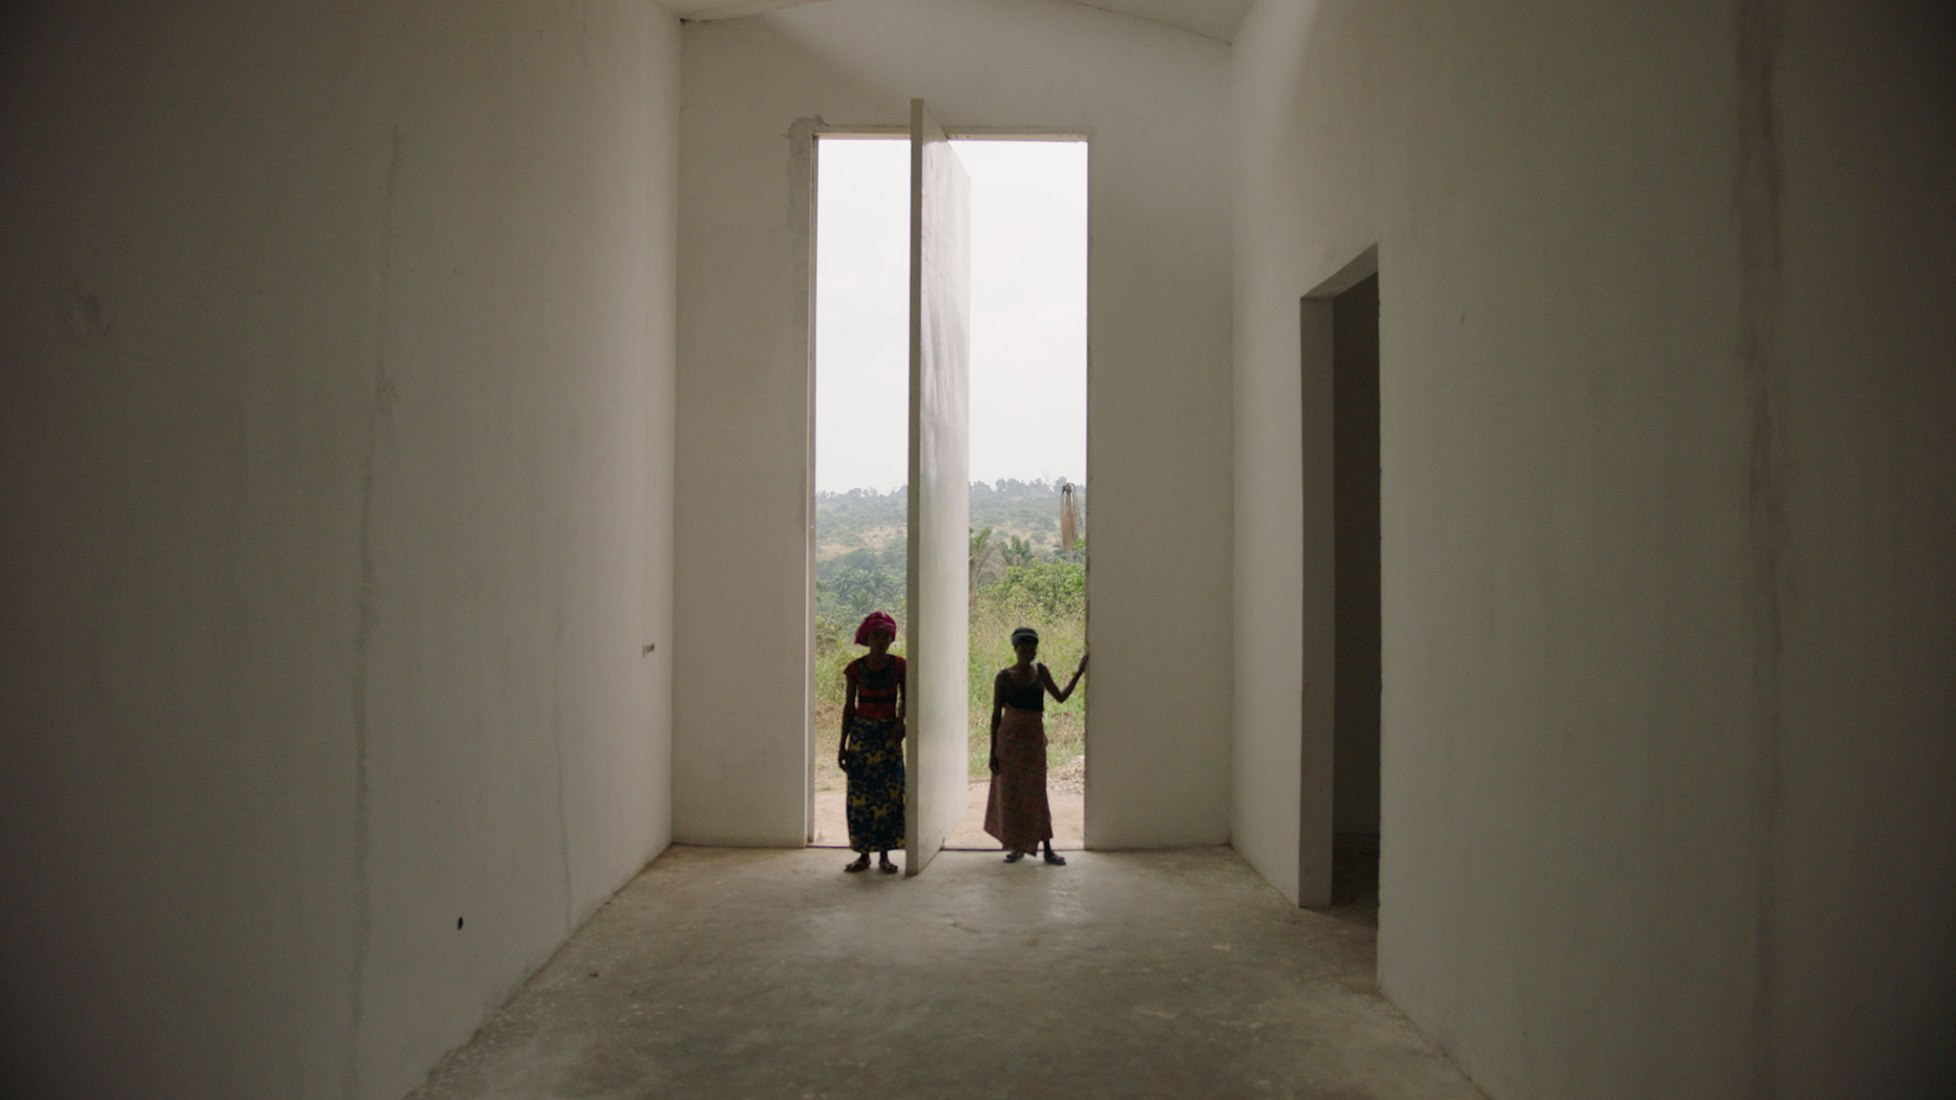 Mbuku Kimpala and Irene Kanga at entrance of White  Cube (still from White Cube, Renzo Martens) ©  Institute for Human Activities.